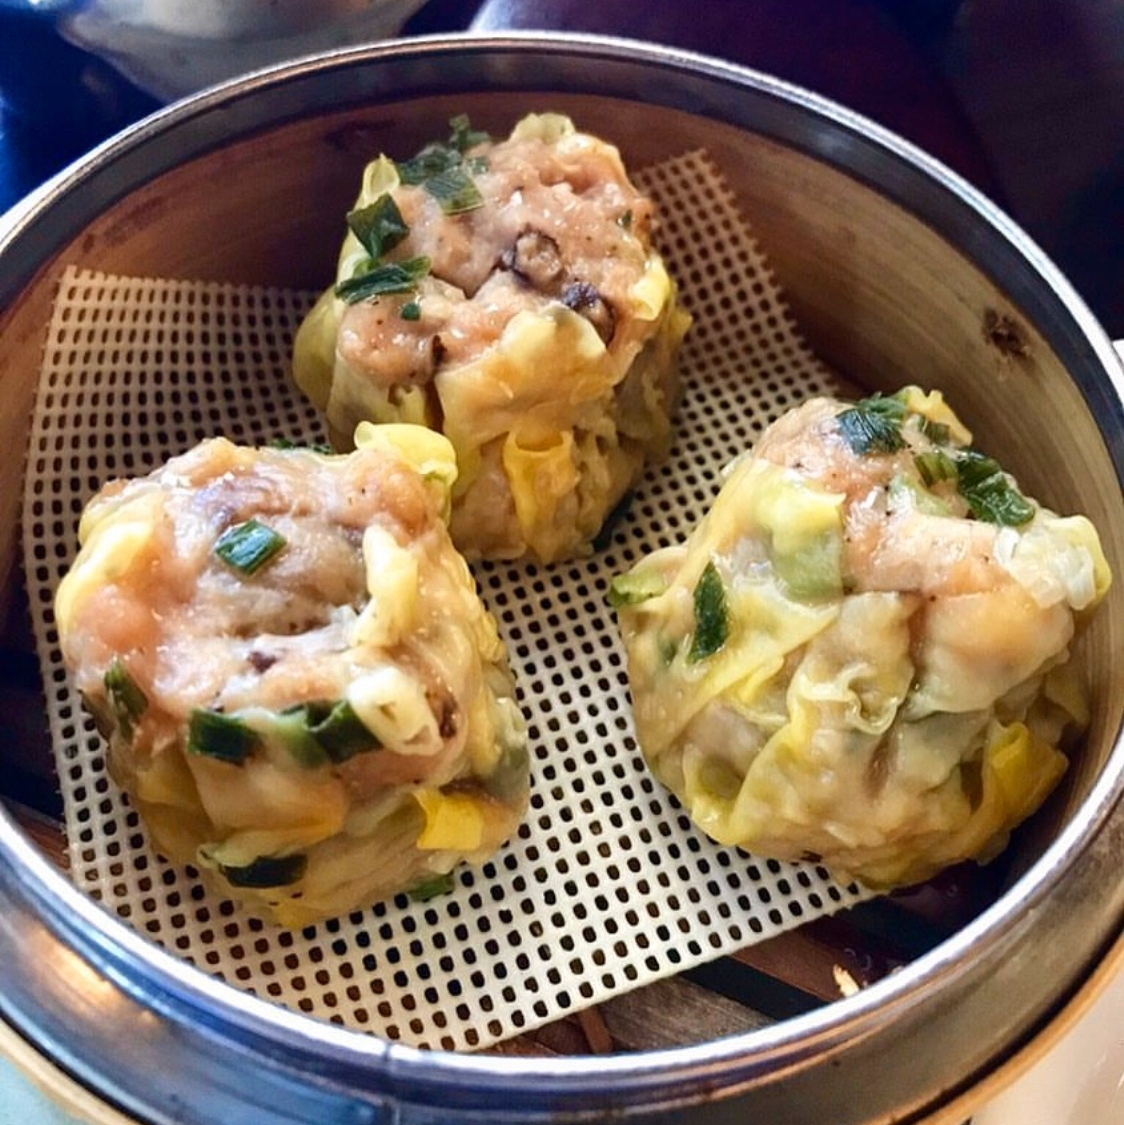 It's #GetSumDimSum o'clock and we're ready to get as stuffed as the @Tenderbelly Pork & Shrimp Shumai.   #enterthechow #farmtotable #chinesefood #atxdimsum #atxbrunches #keepaustineatin #eateratx #opentable #theaustinot #dimsumbrunch #dumplings #dailyfoodfeed #atxbrunchpic.twitter.com/wGPfaYBMzF